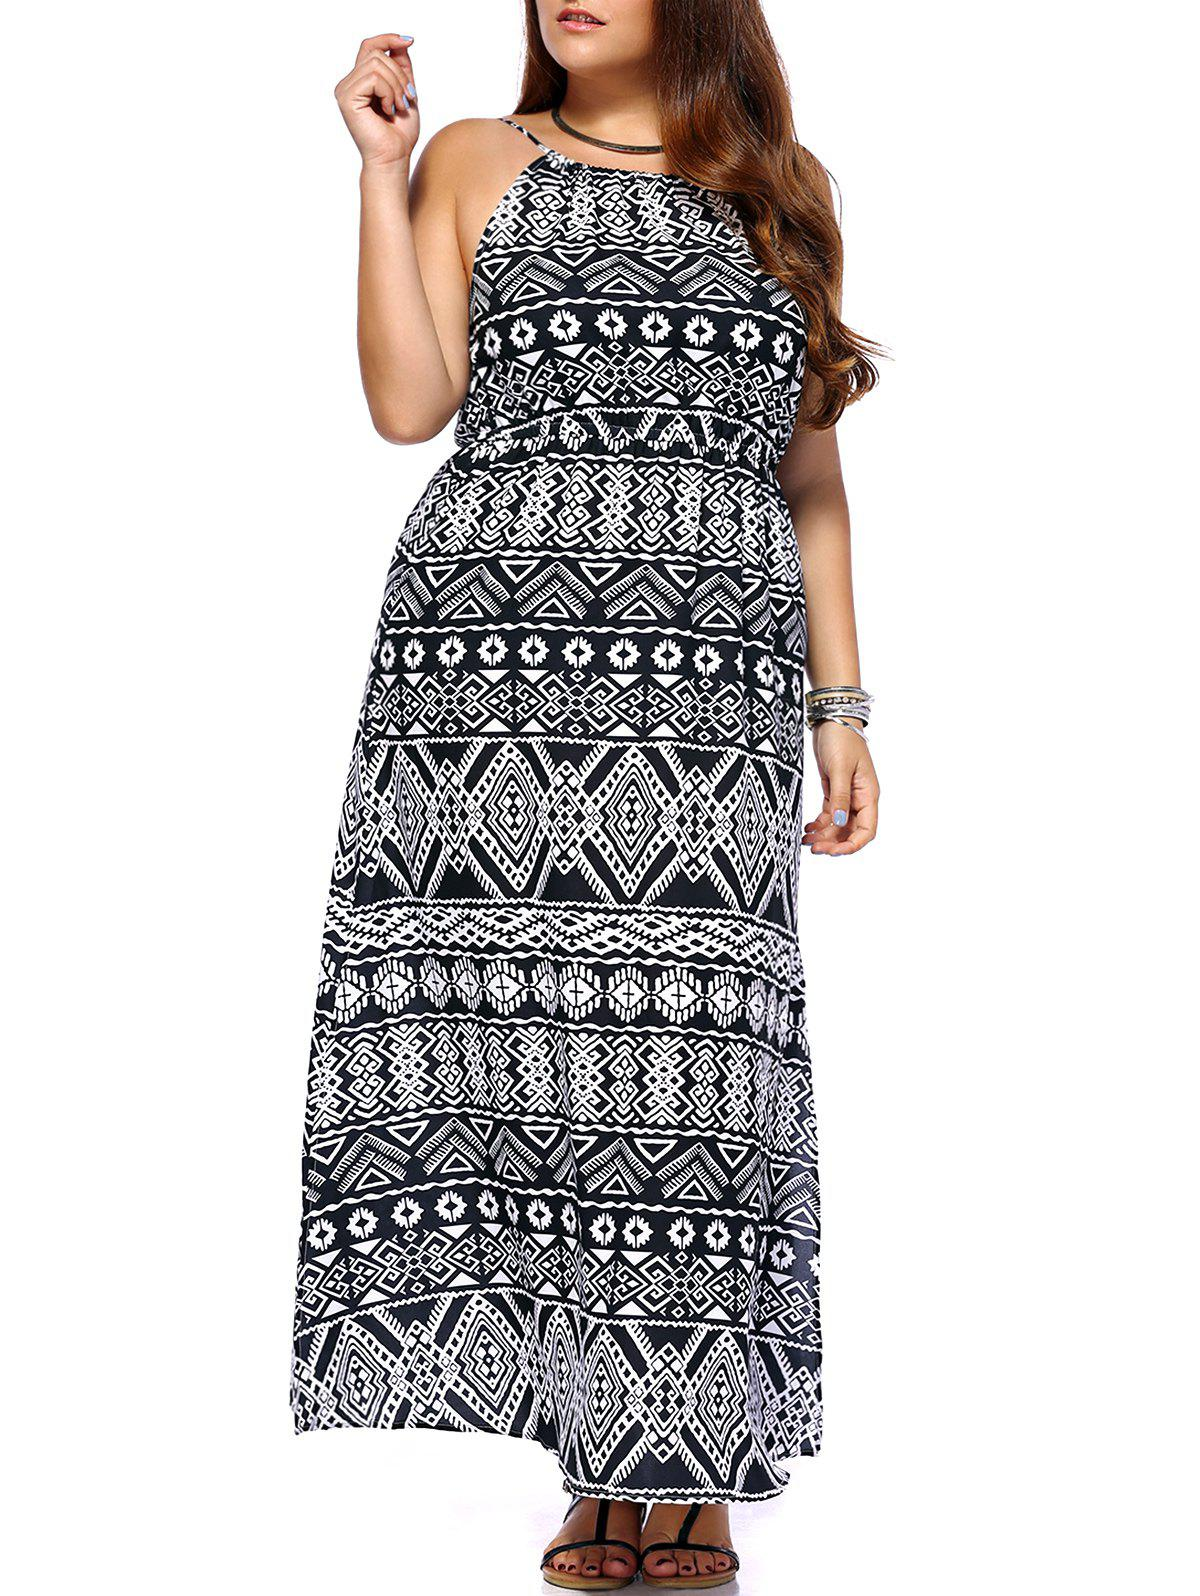 Trendy Geometrical Printed Sleeveless Plus Size Dress For Women - COLORMIX 3XL